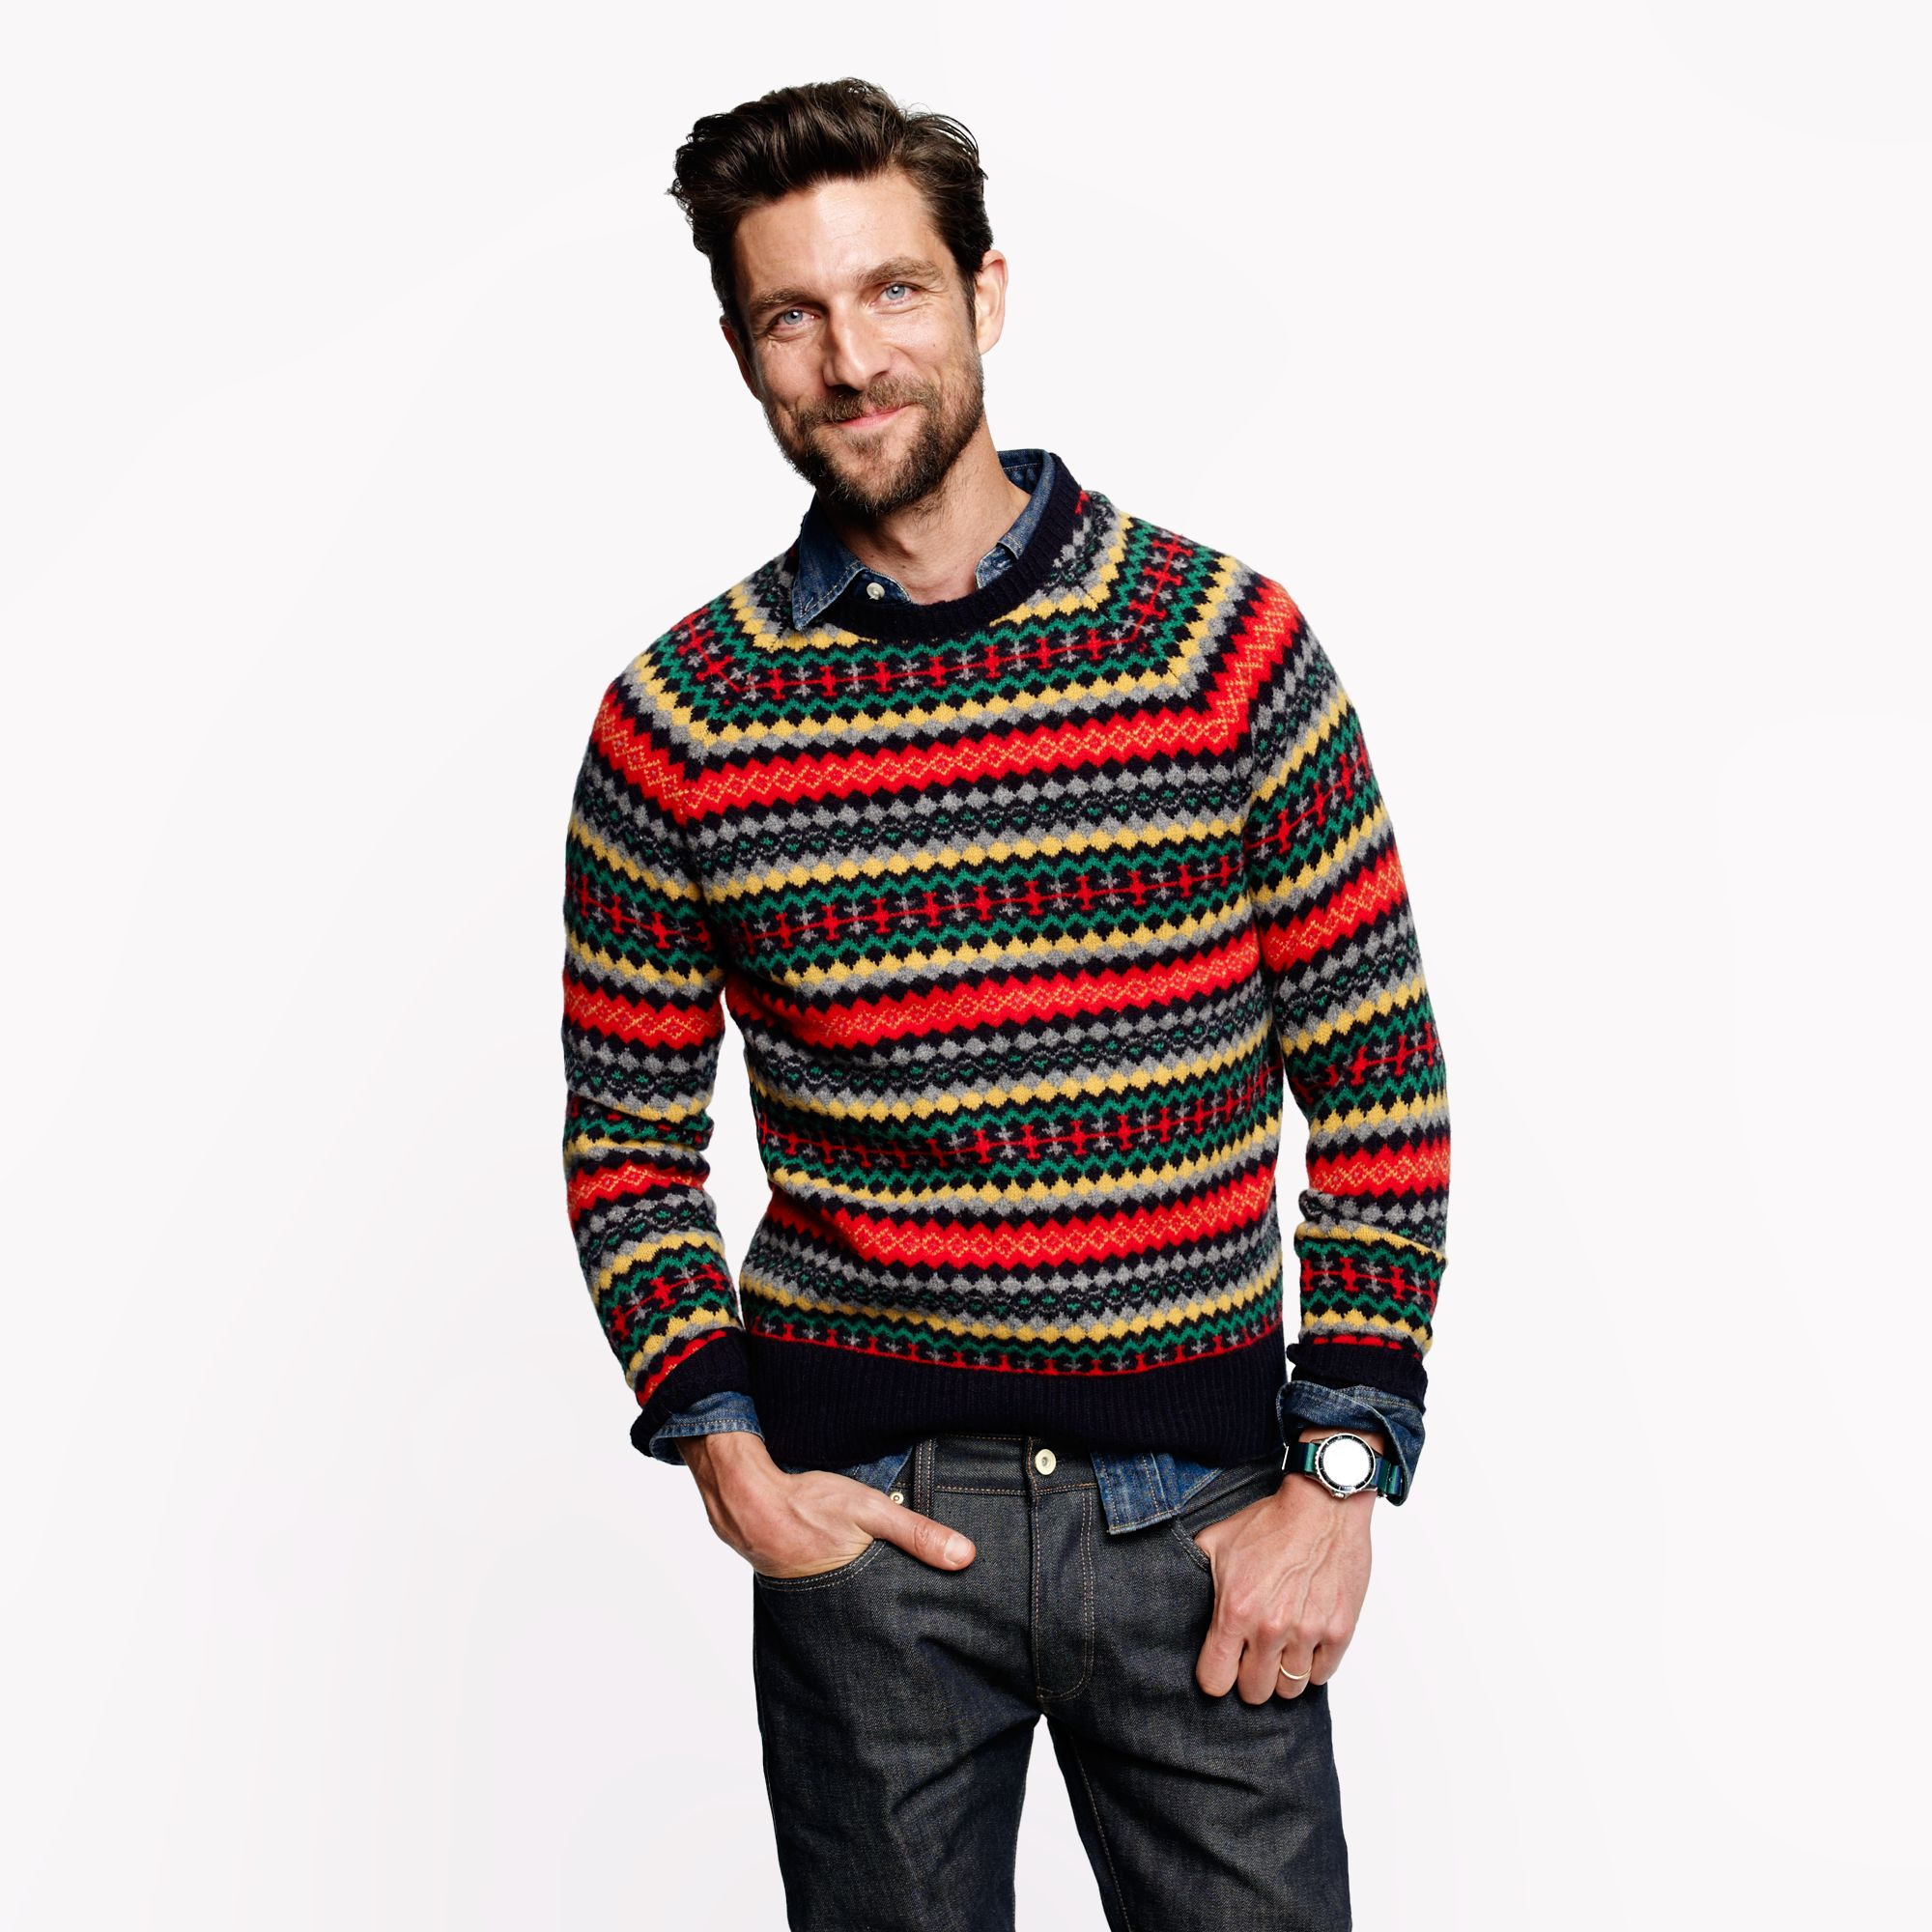 Find mens fair isle sweater at ShopStyle. Shop the latest collection of mens fair isle sweater from the most popular stores - all in one place.